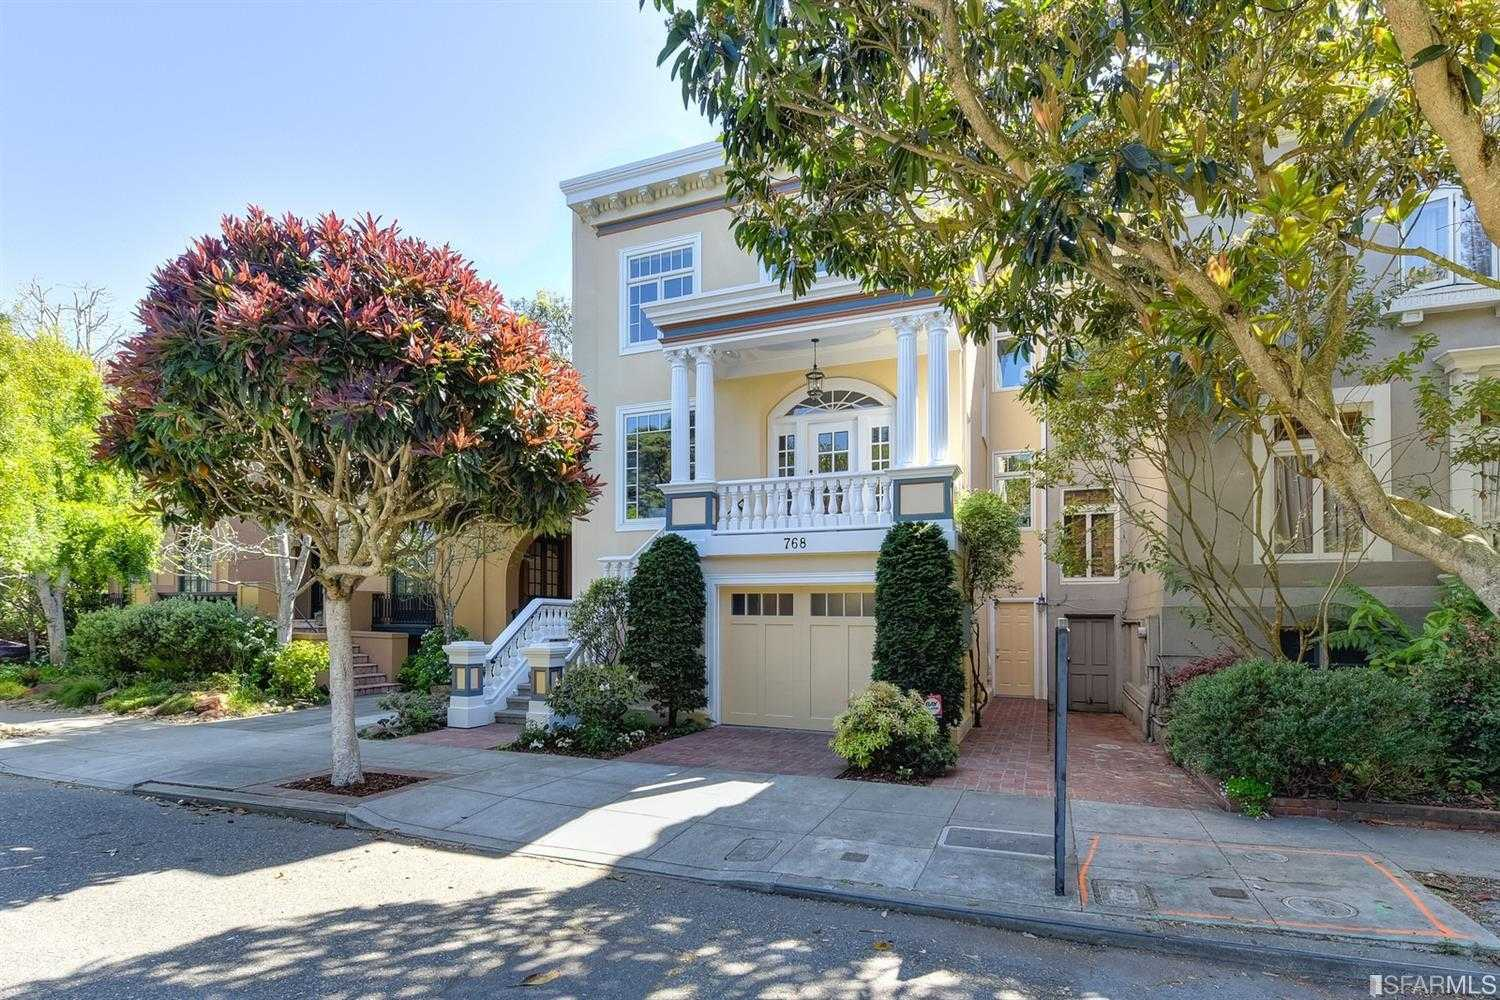 768 Funston Ave San Francisco, CA 94118